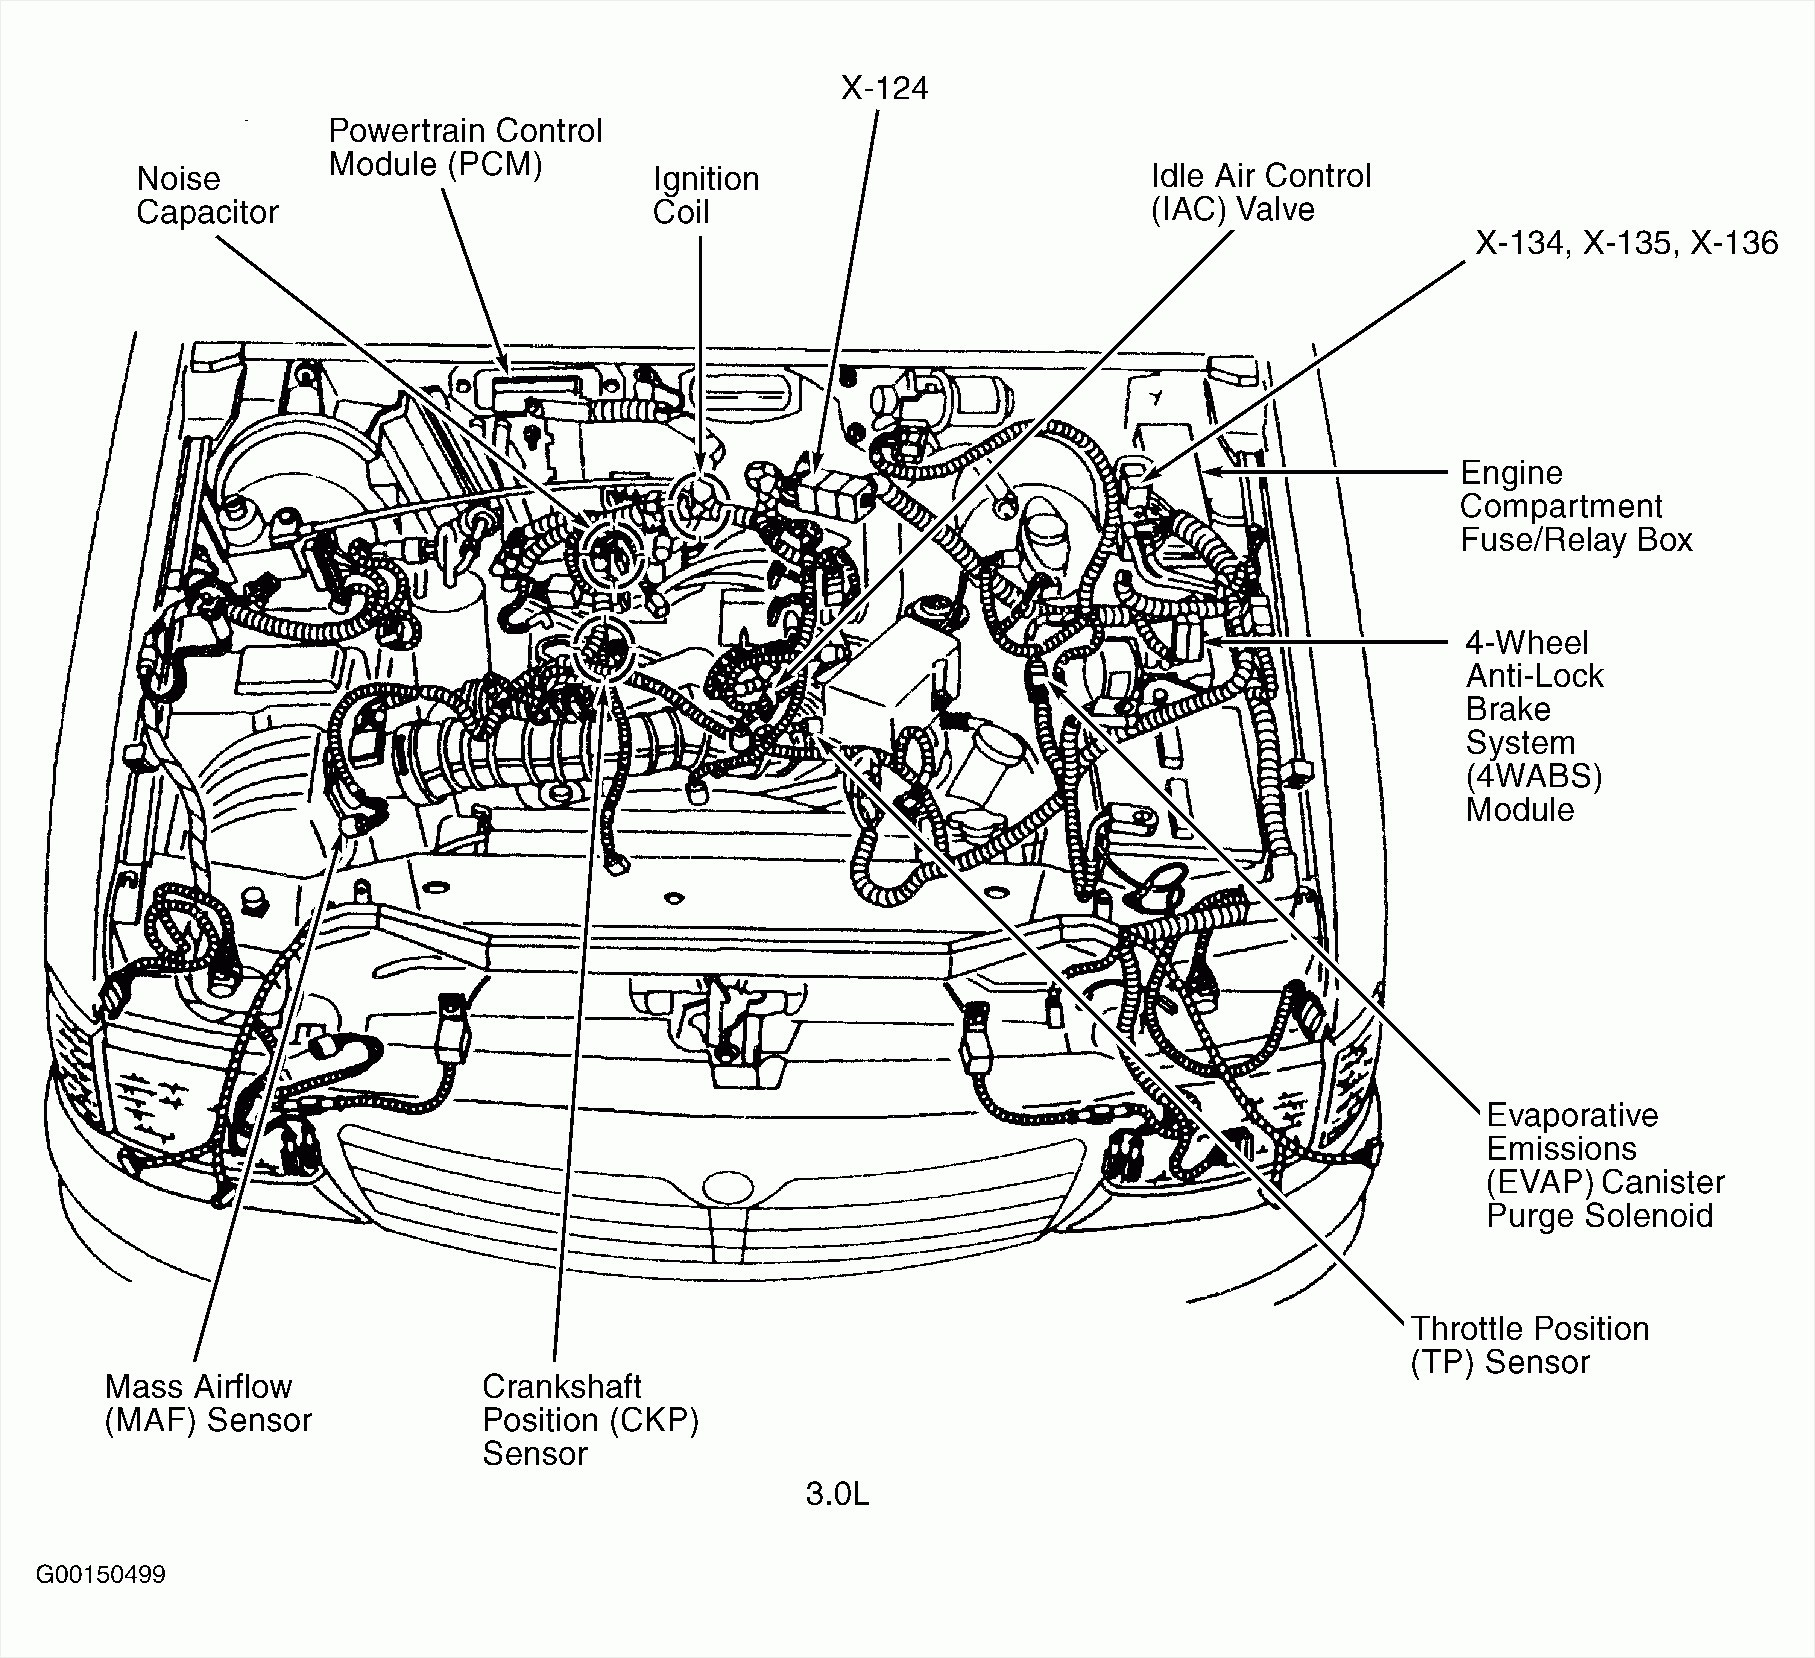 Engine Coolent Diagram Guide And Troubleshooting Of Wiring 2013 Chevy Spark 3 4 L Coolant Flow Diagrams Rh 46 Jennifer Retzke De